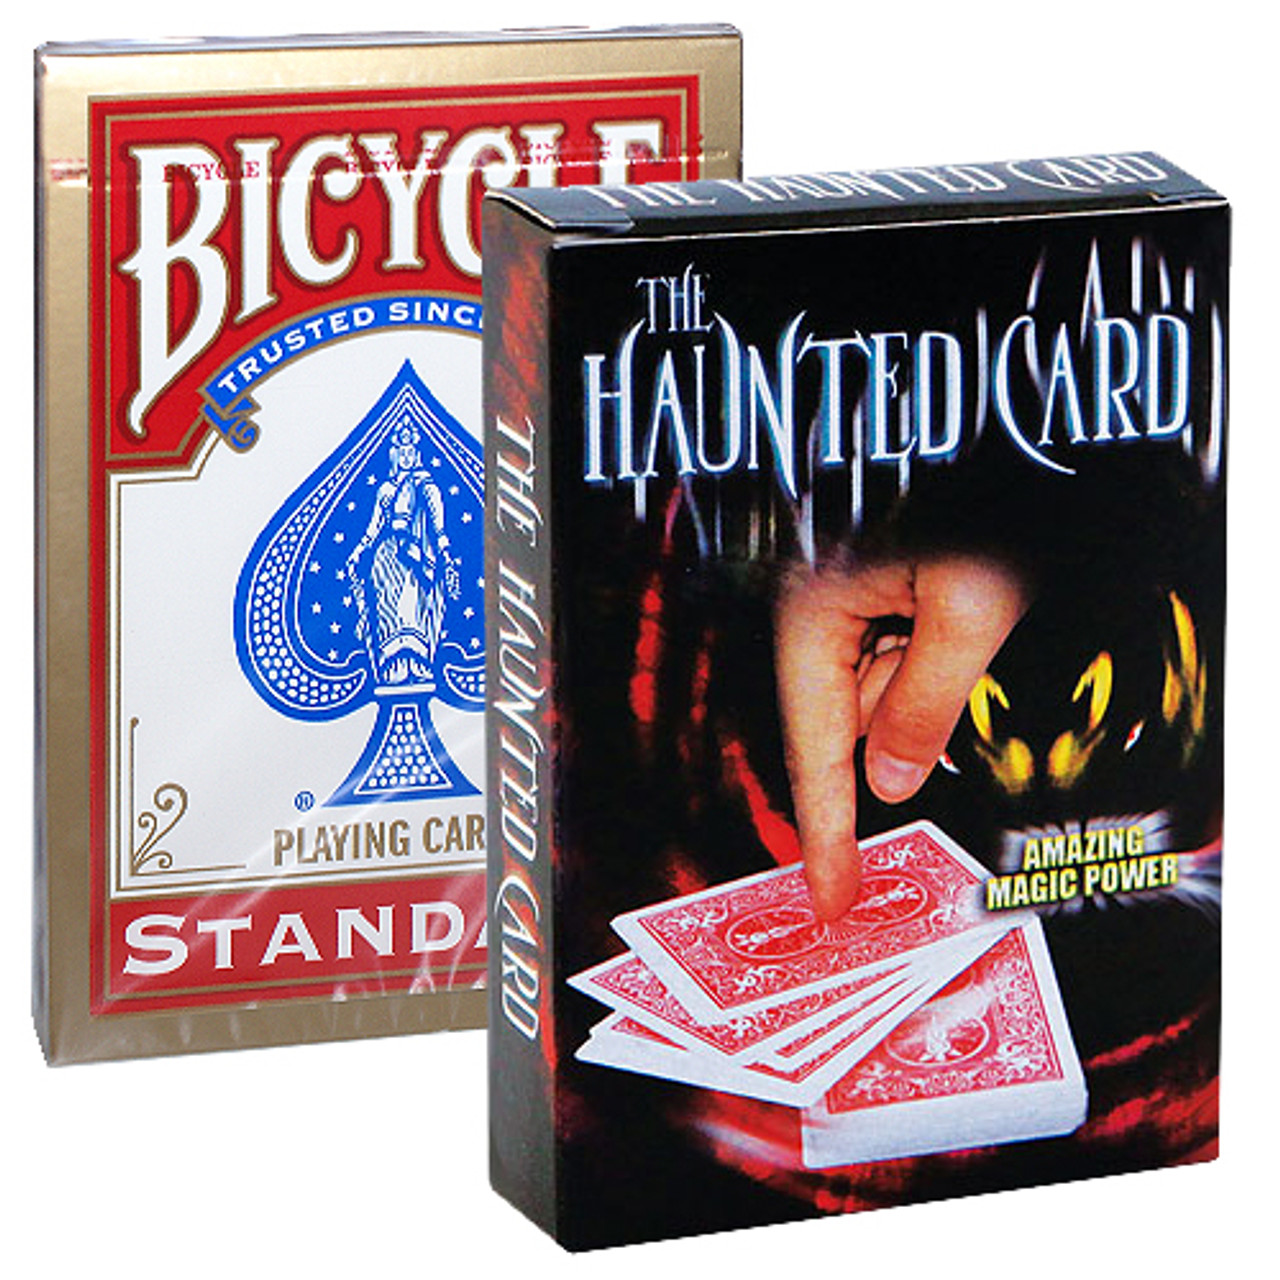 Haunted Card Magic Trick Card Gospel